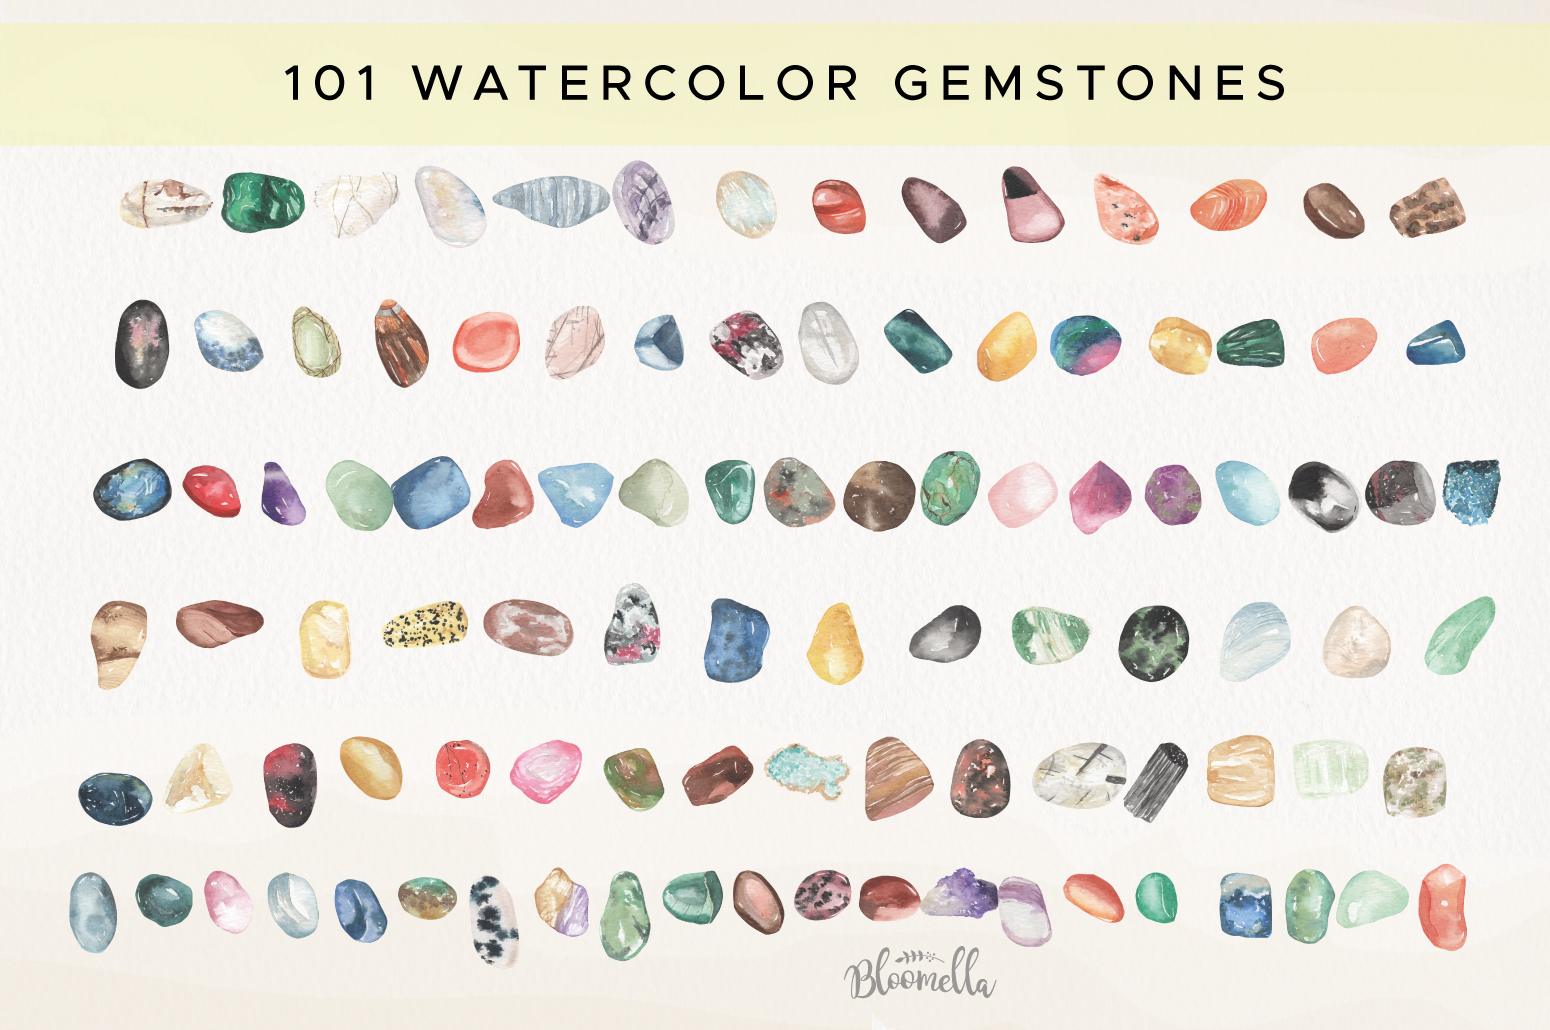 101 Gemstones Collection Watercolor Clipart ElementsCrystals example image 6